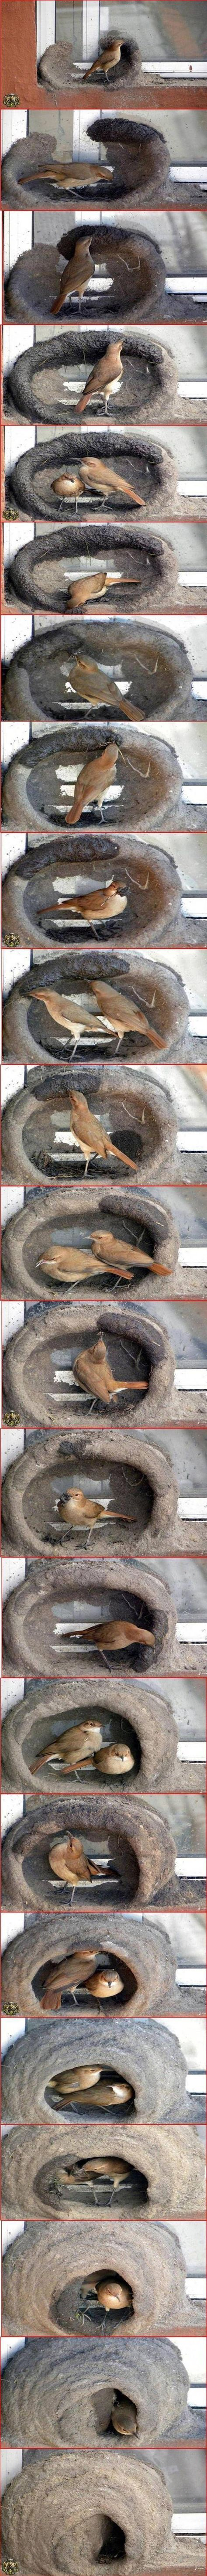 hornero-bird-building-nest ~ these birds go get dirt, muddy it with their saliva and that's how the nest is made.